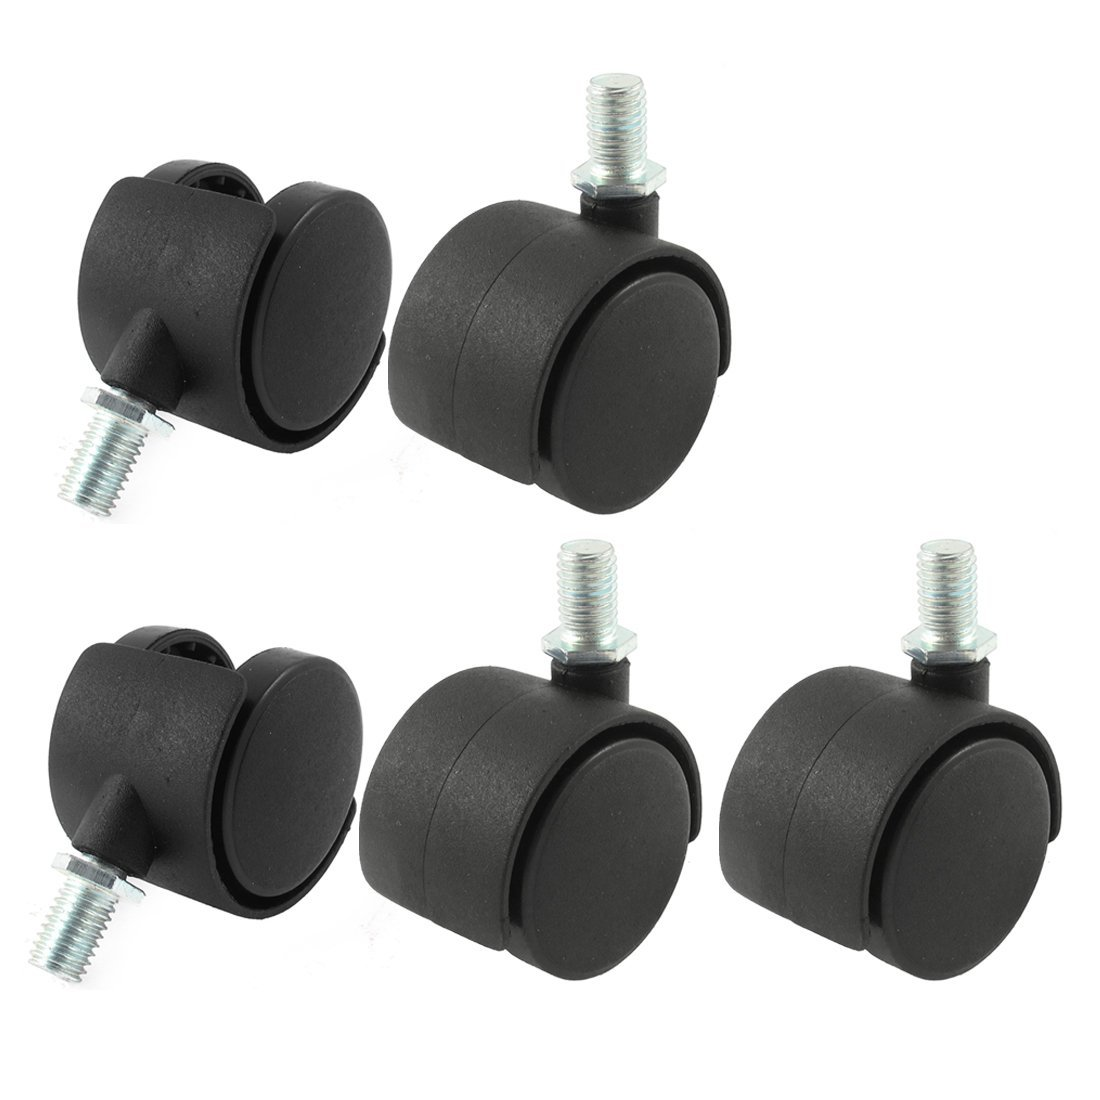 chair casters threaded stem reupholster outdoor chairs 8mm 2 inch dia wheel swivel caster 5